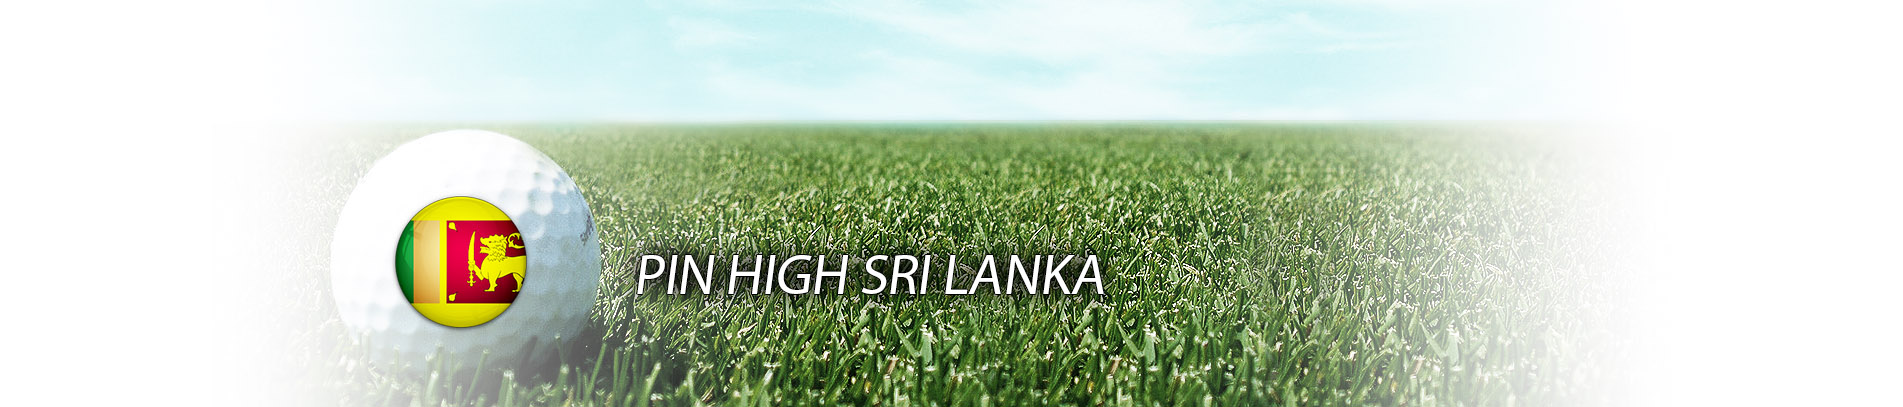 PIN HIGH SRI LANKA